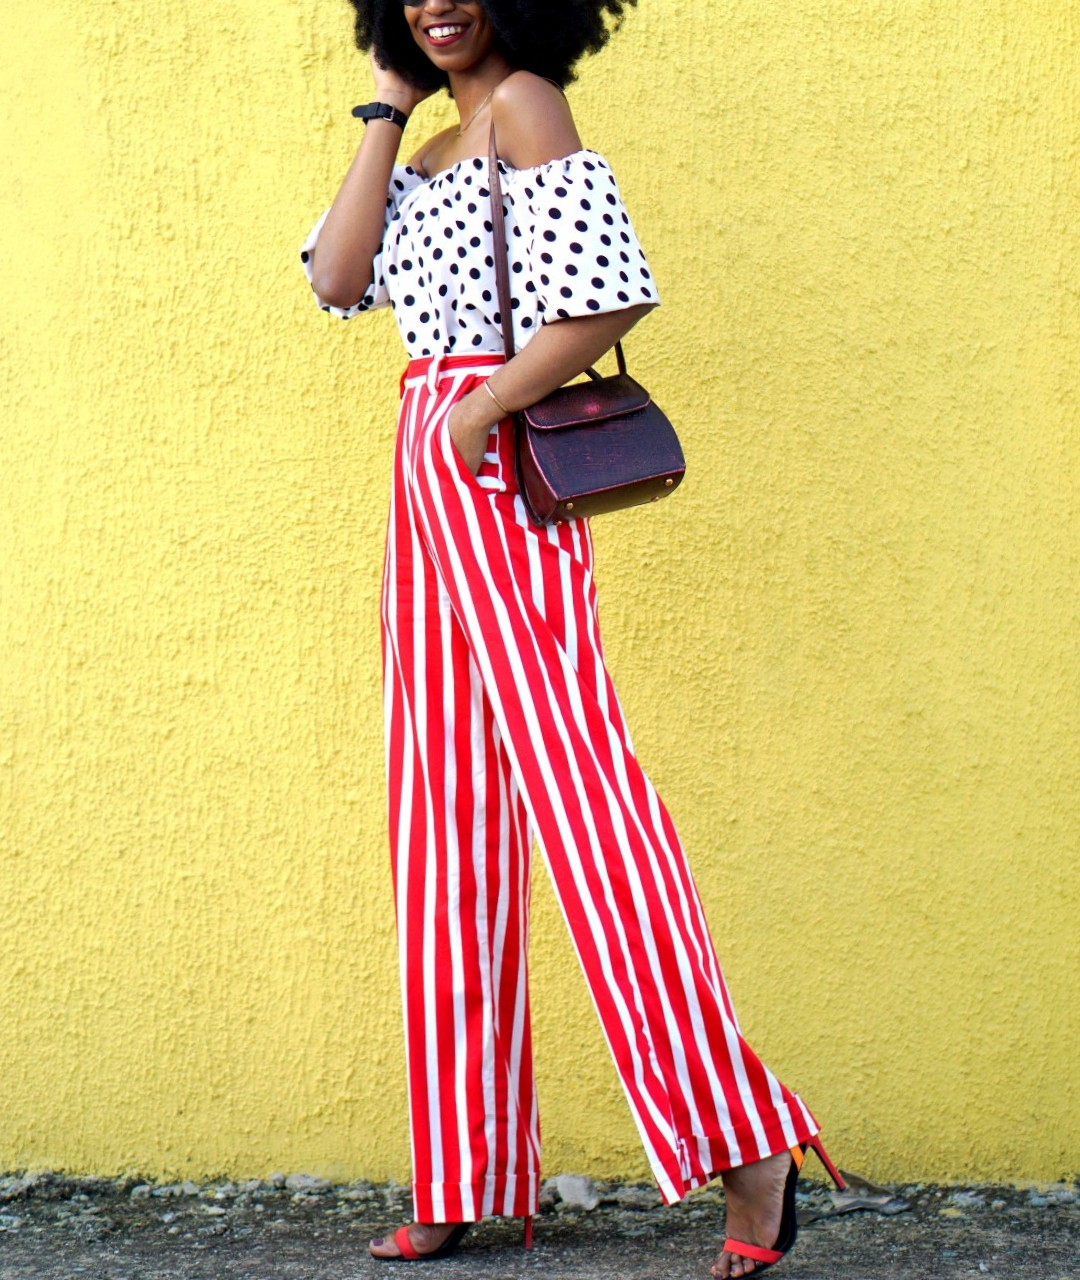 Mixed prints fashion trend : Nigerian fashion blogger Cassie Daves In a polka dot off shoulder top and striped pants